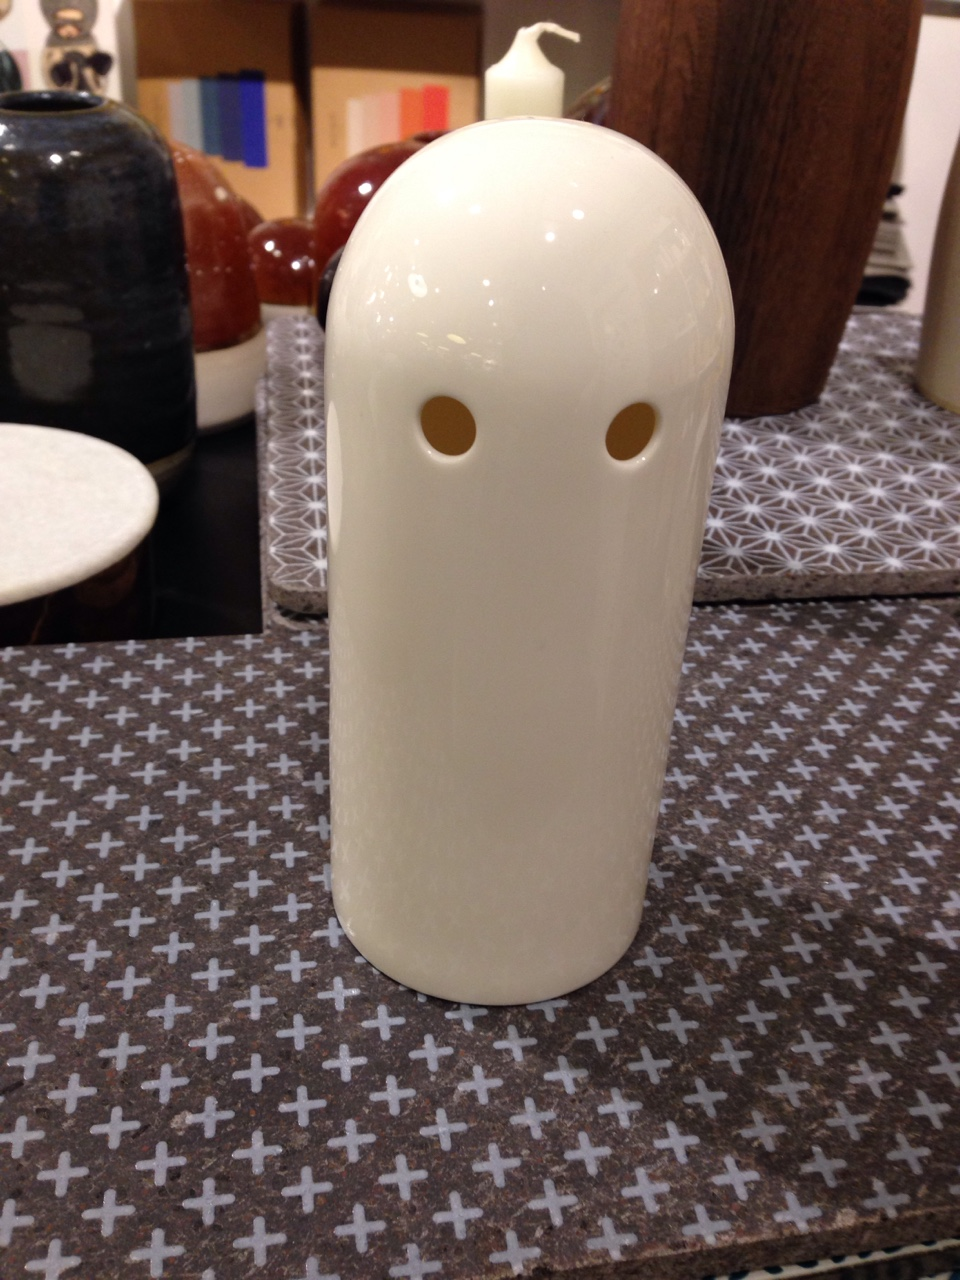 Aarhus shopping; cubebots are aware, basic hands, ghost candle holder